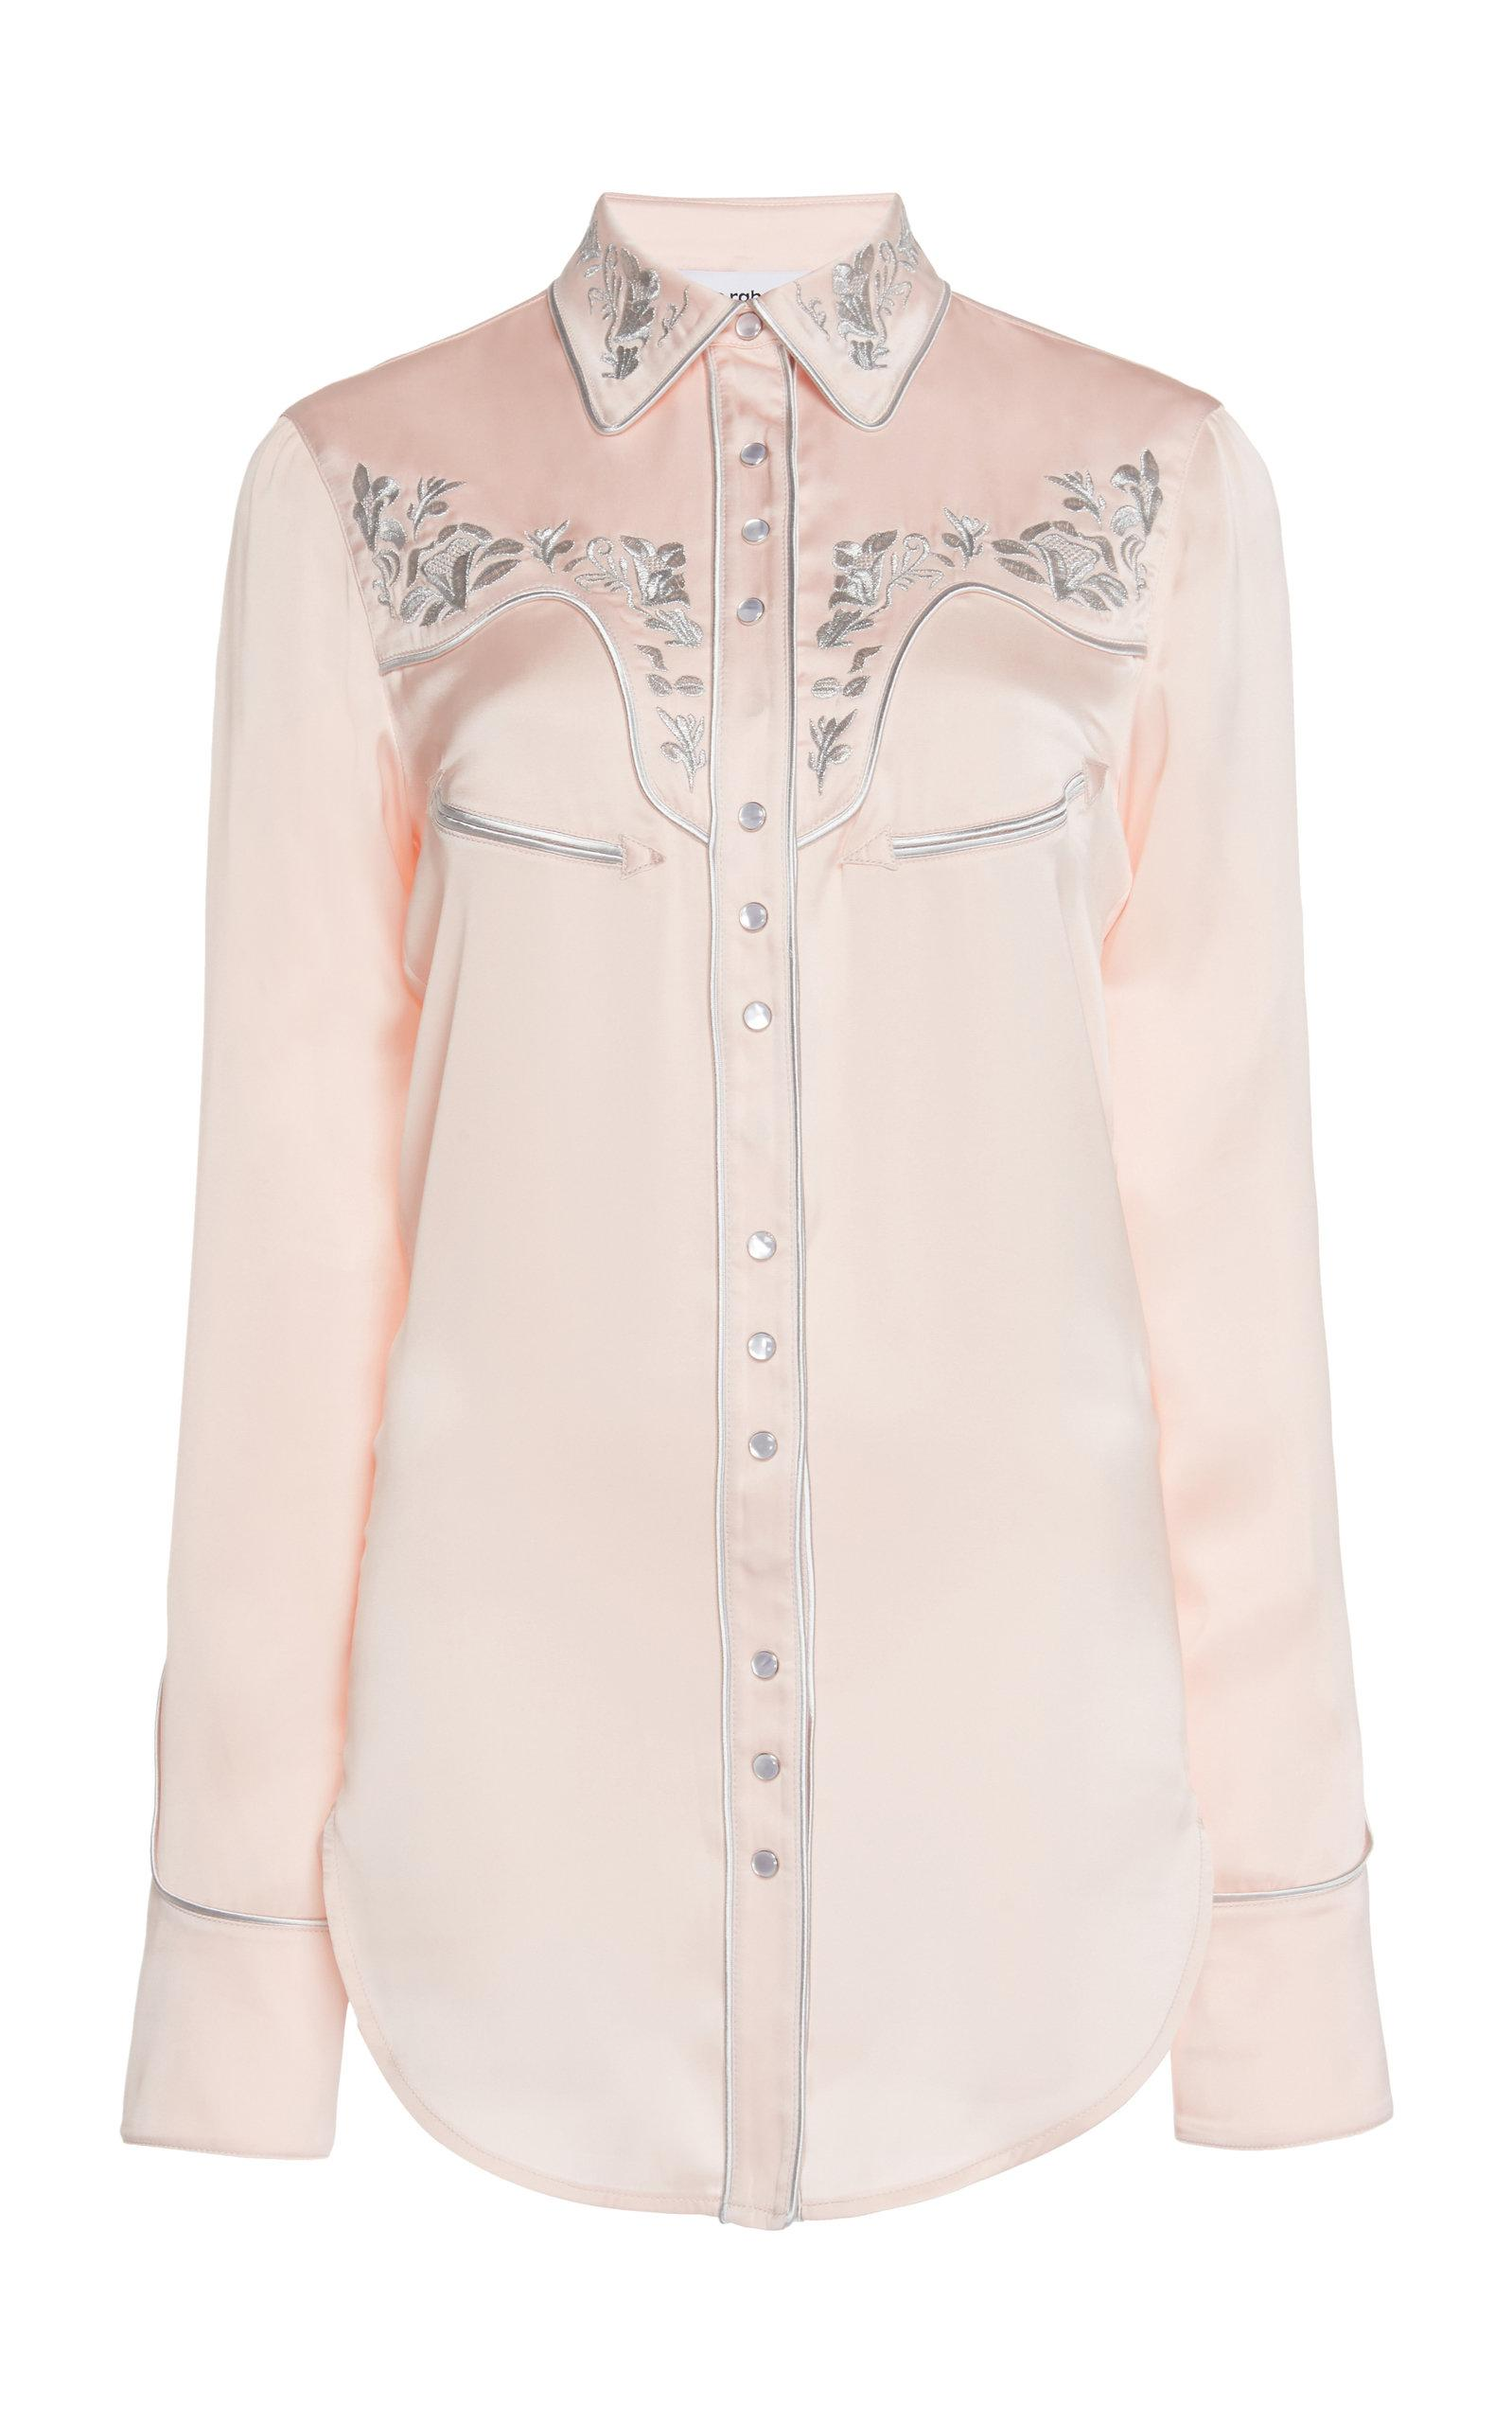 f54a4892 Lyst - Paco Rabanne Satin Embroidered Button Down Shirt in Pink